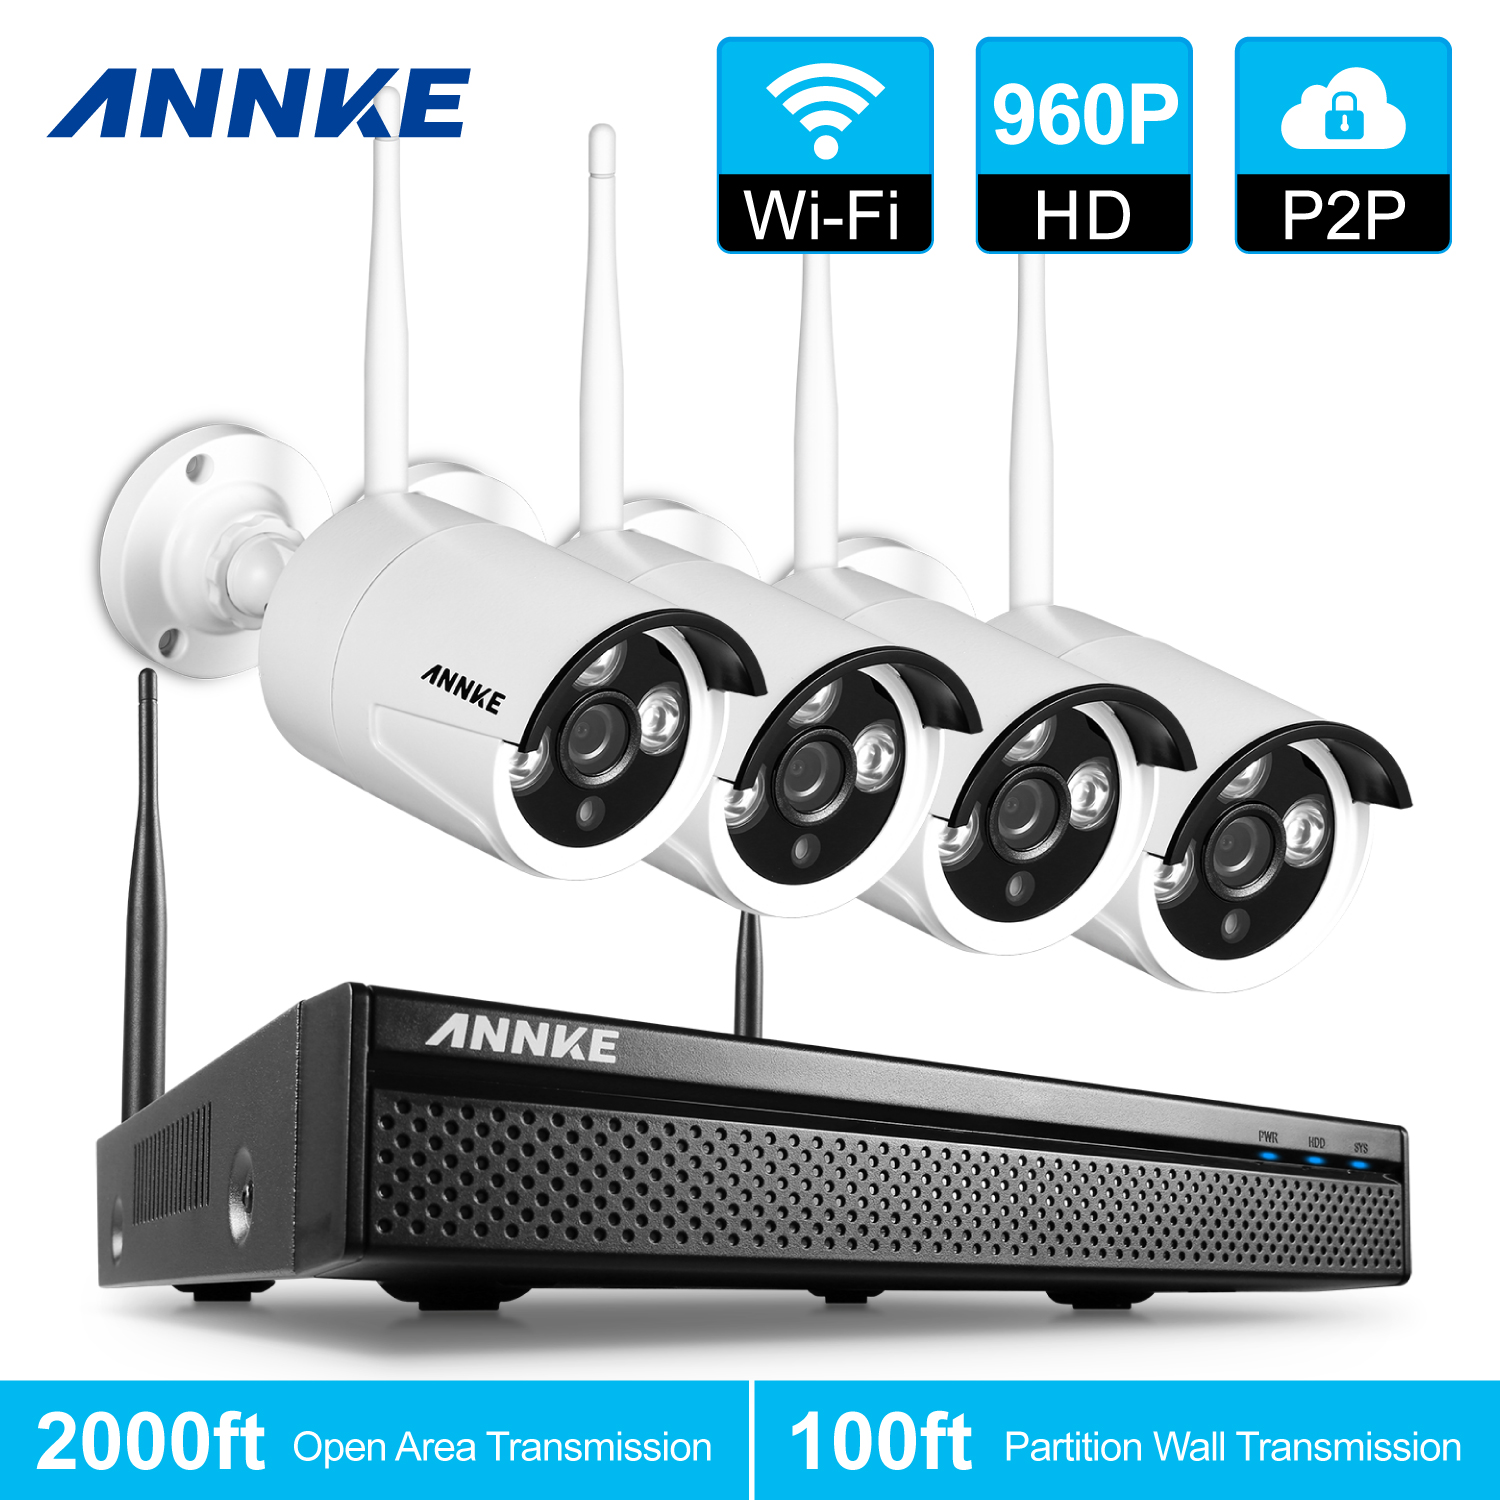 ANNKE 960P HD 4 Cameras 4CH Wireless Security System DVR 1.3MP Bullet Cam Surveillence Kit With No Hard Drive Disk